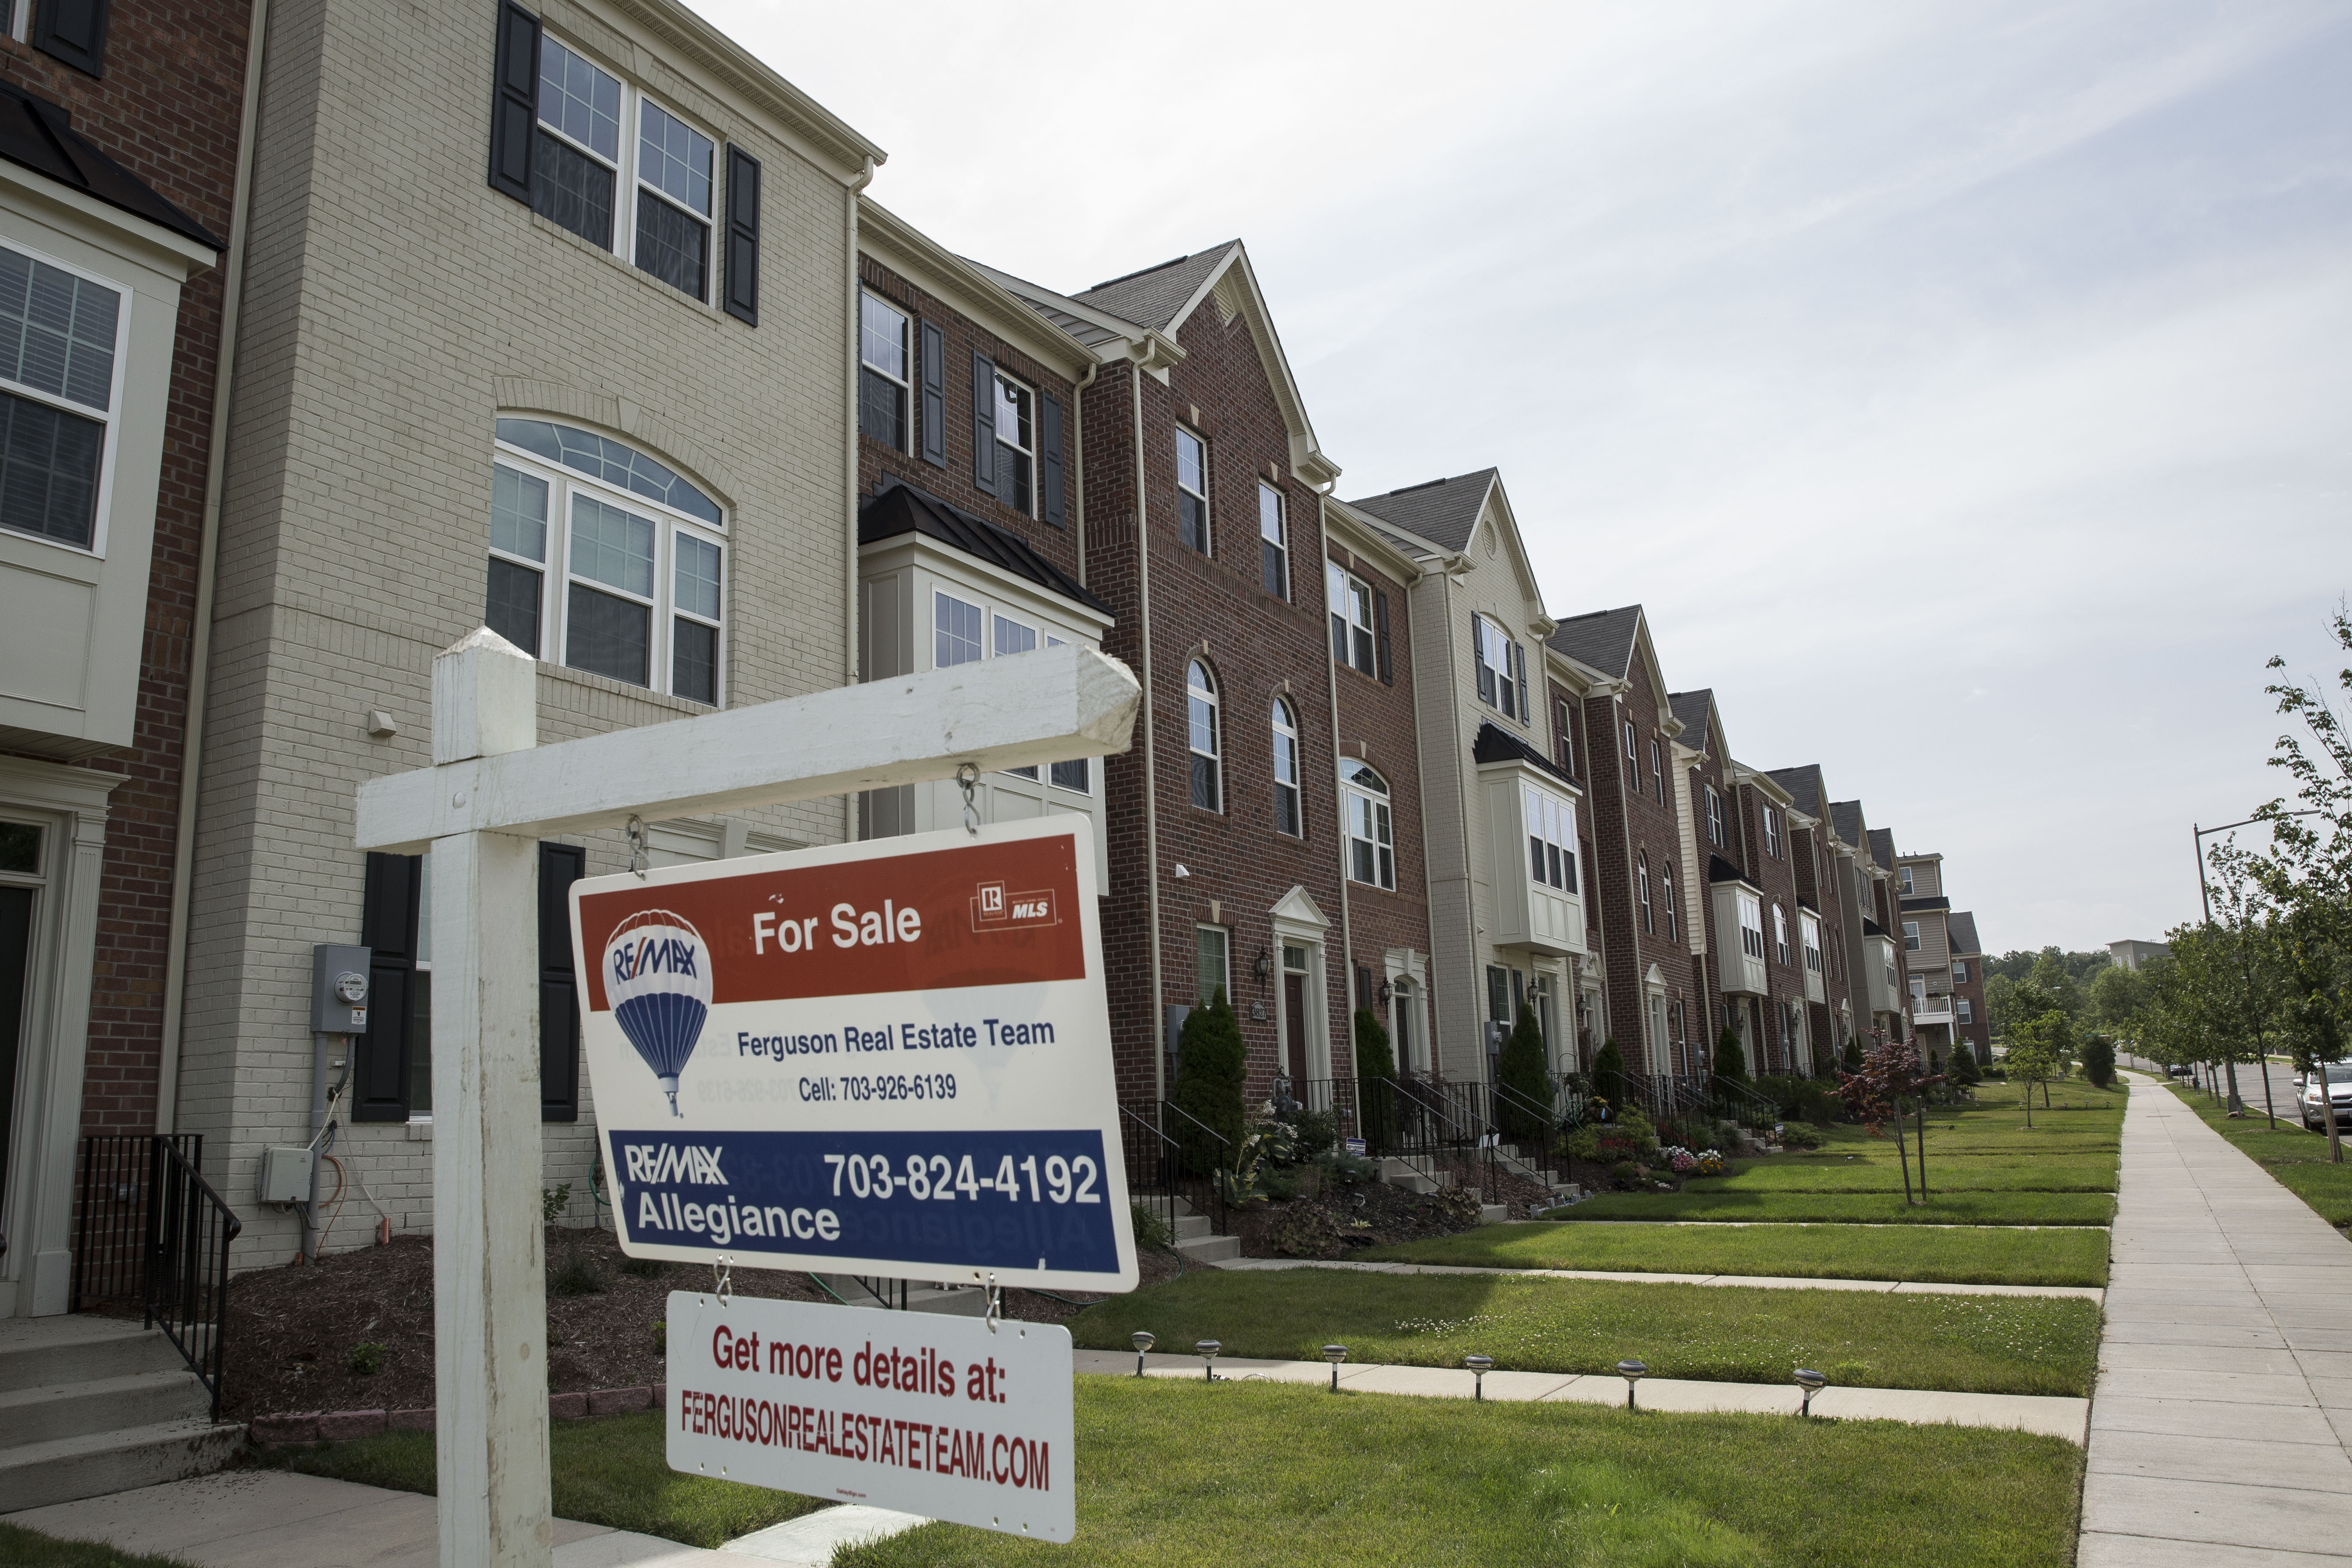 Survey: Living in DC area hurts financial futures for residents